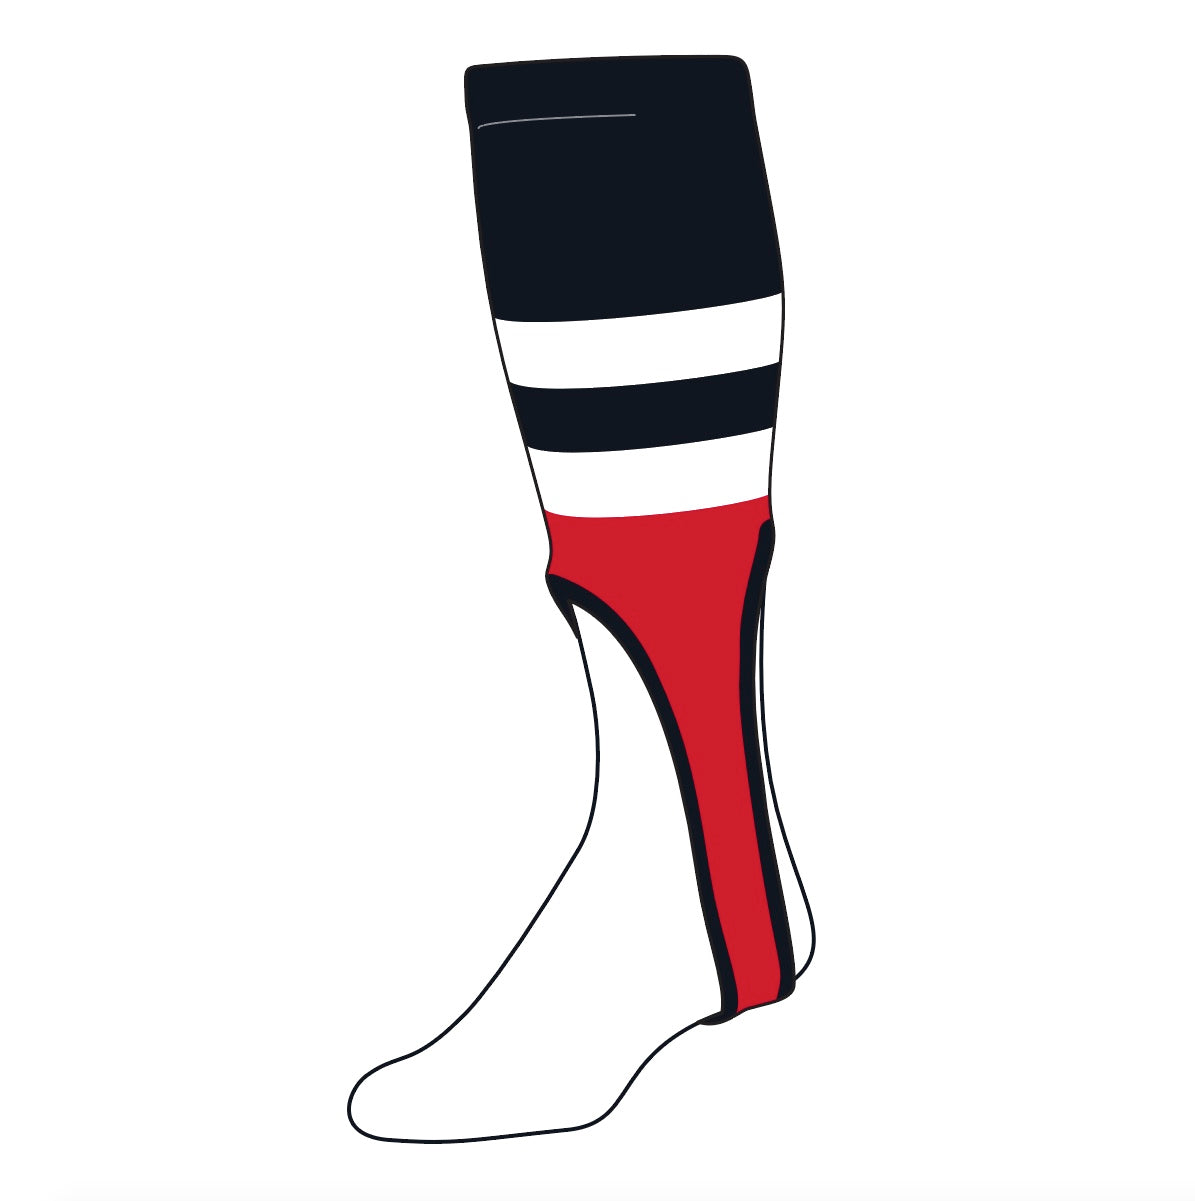 TCK Baseball Stirrups Medium (200G, 9in) Black, White, Red, OE